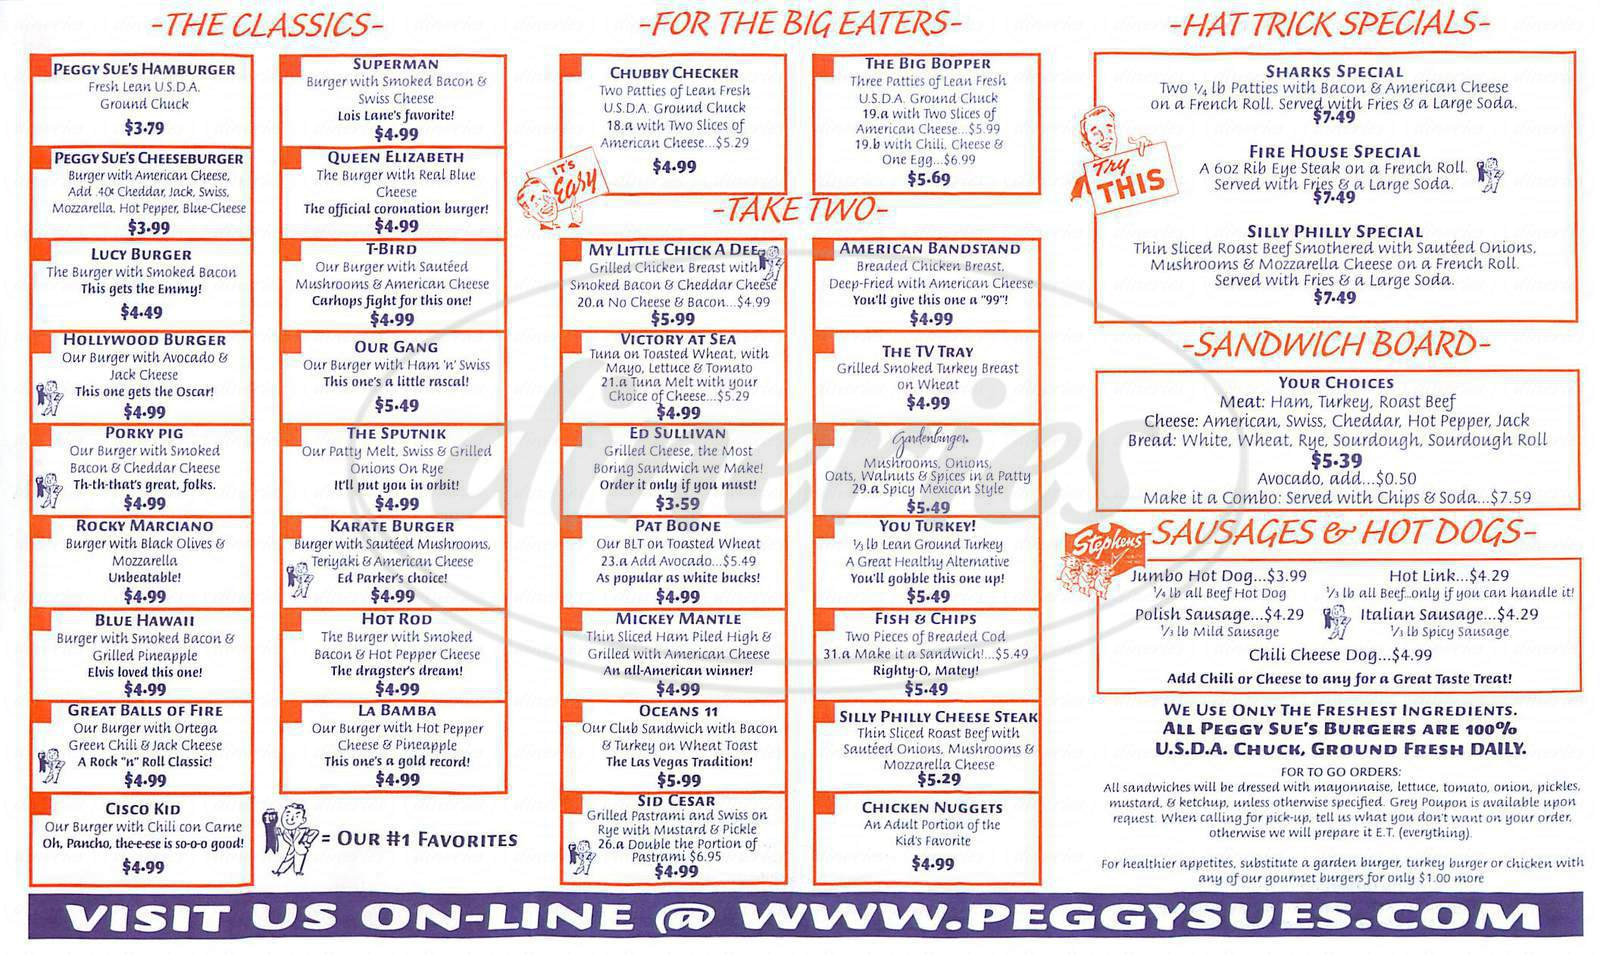 menu for Peggy Sues